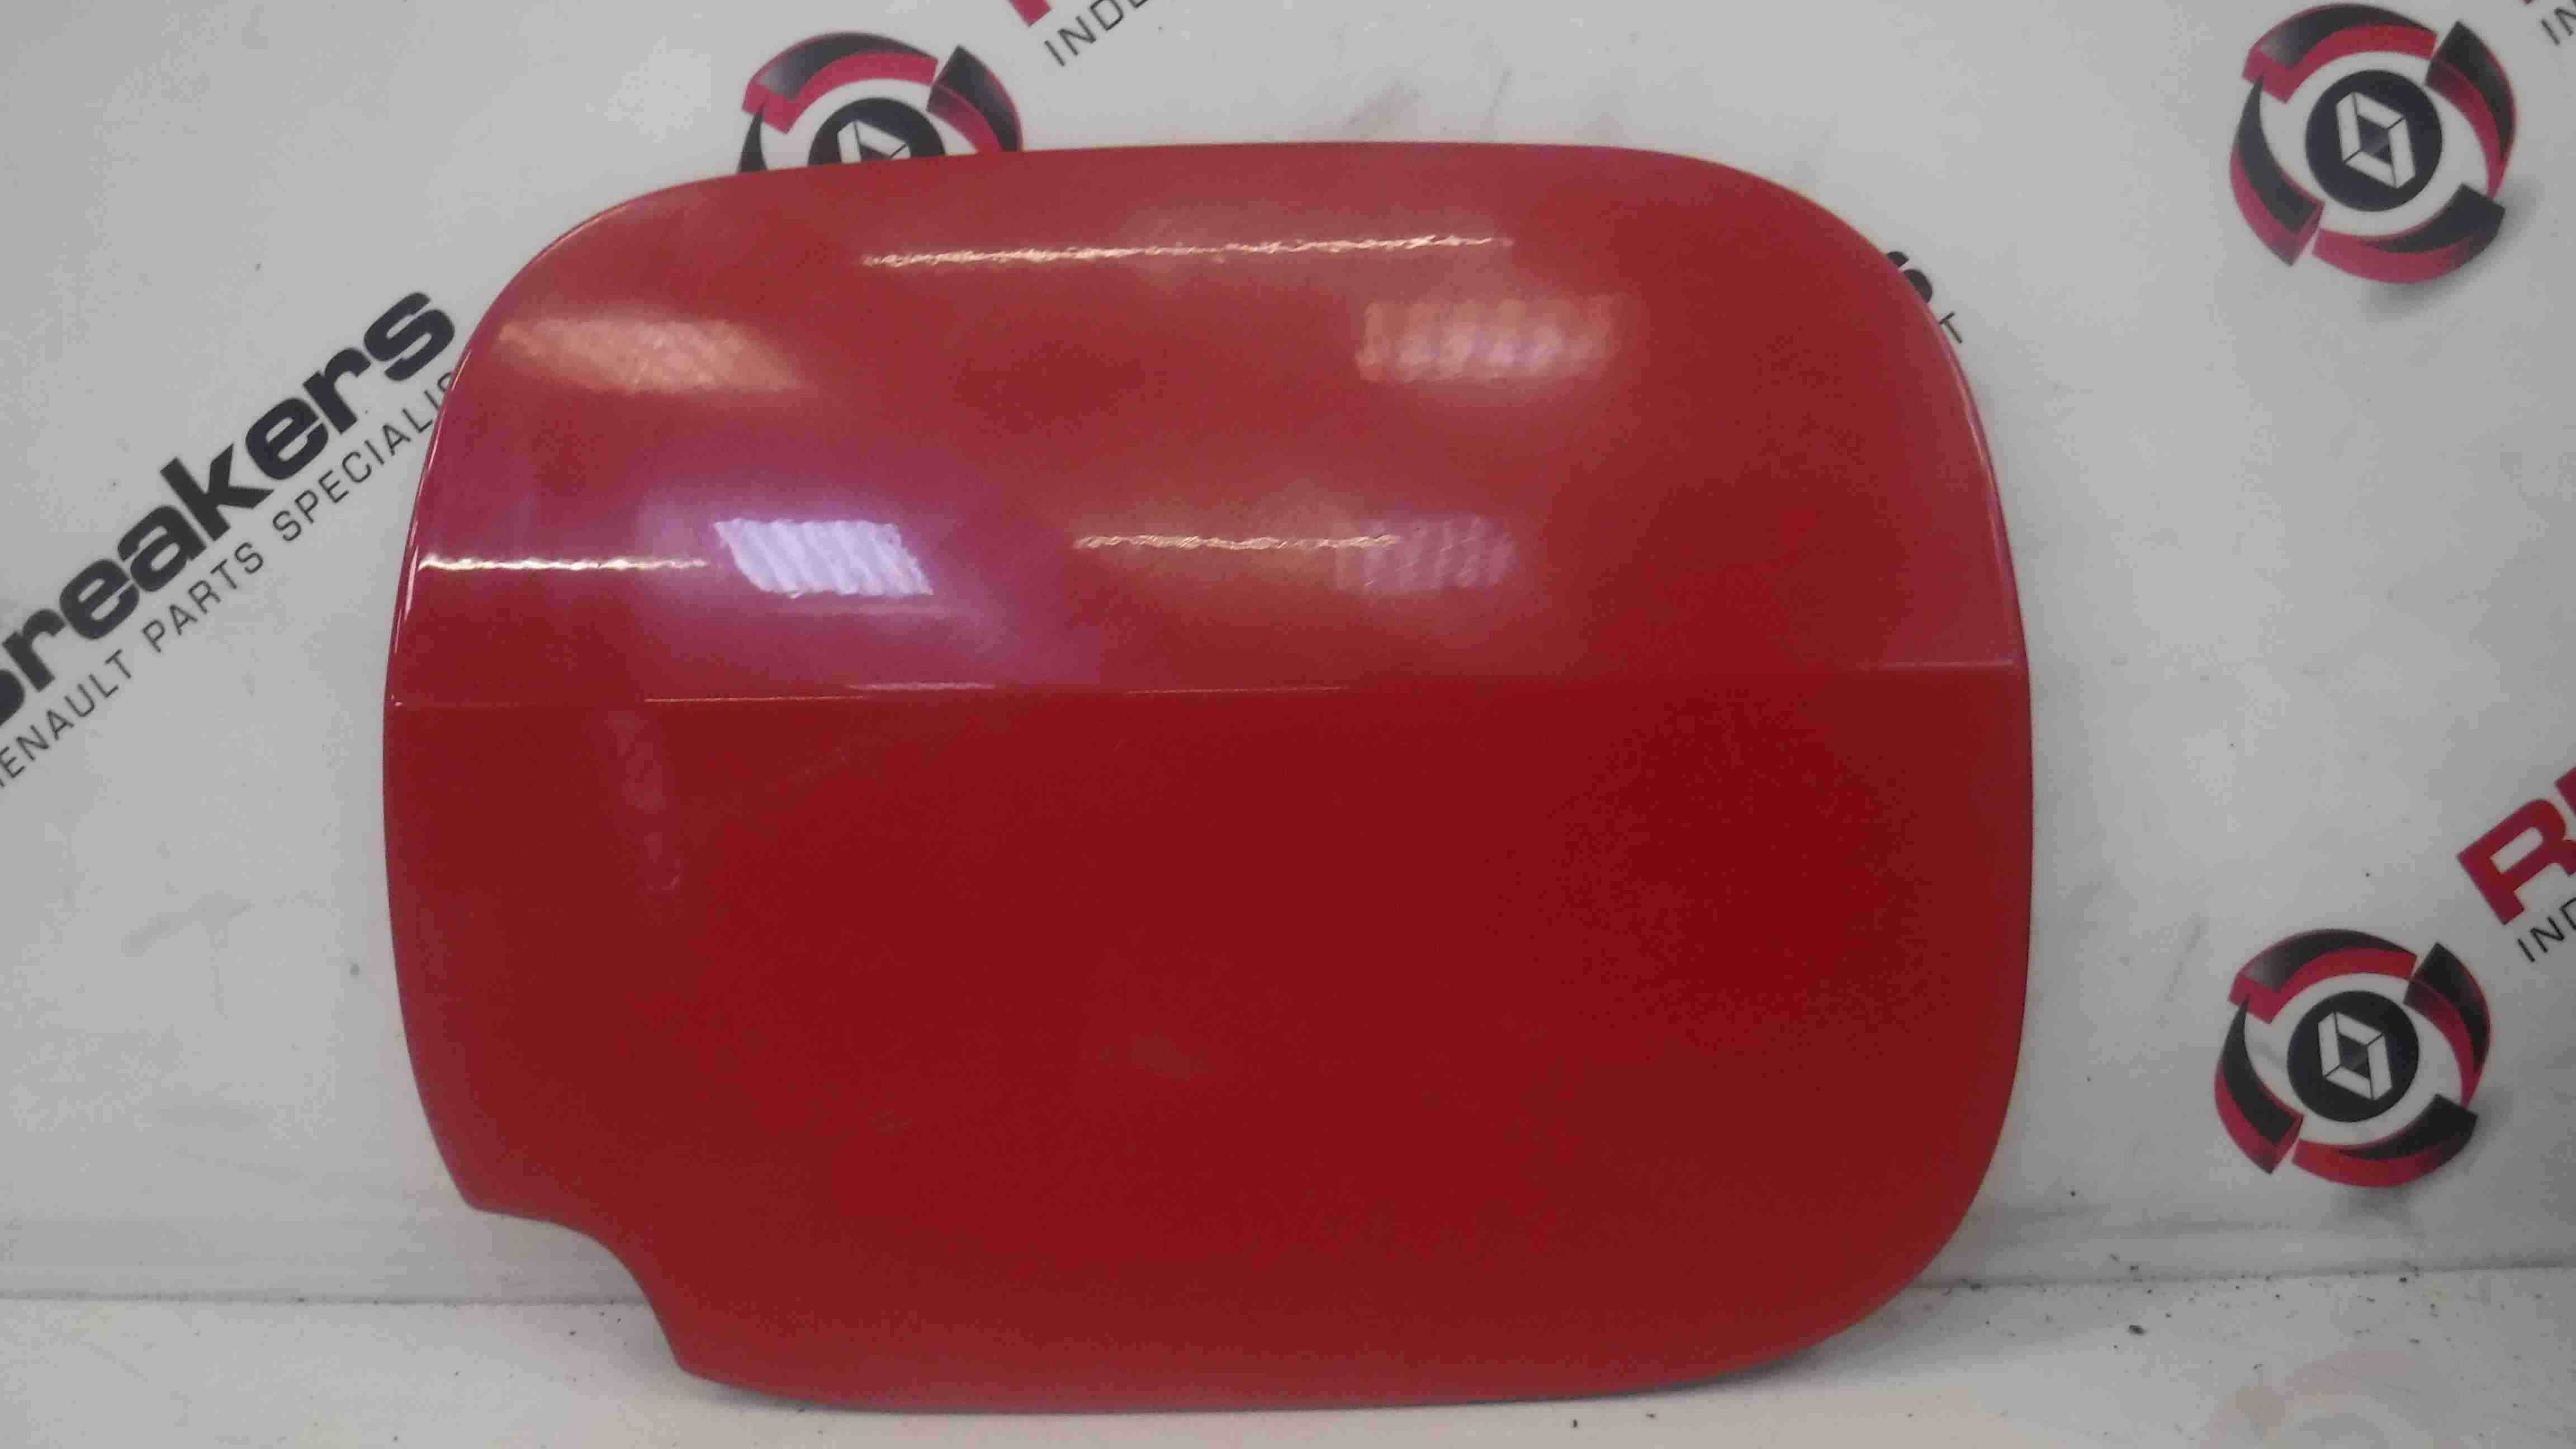 Renault Clio MK3 2005-2012 Fuel Flap Cover Red 727  8200290088